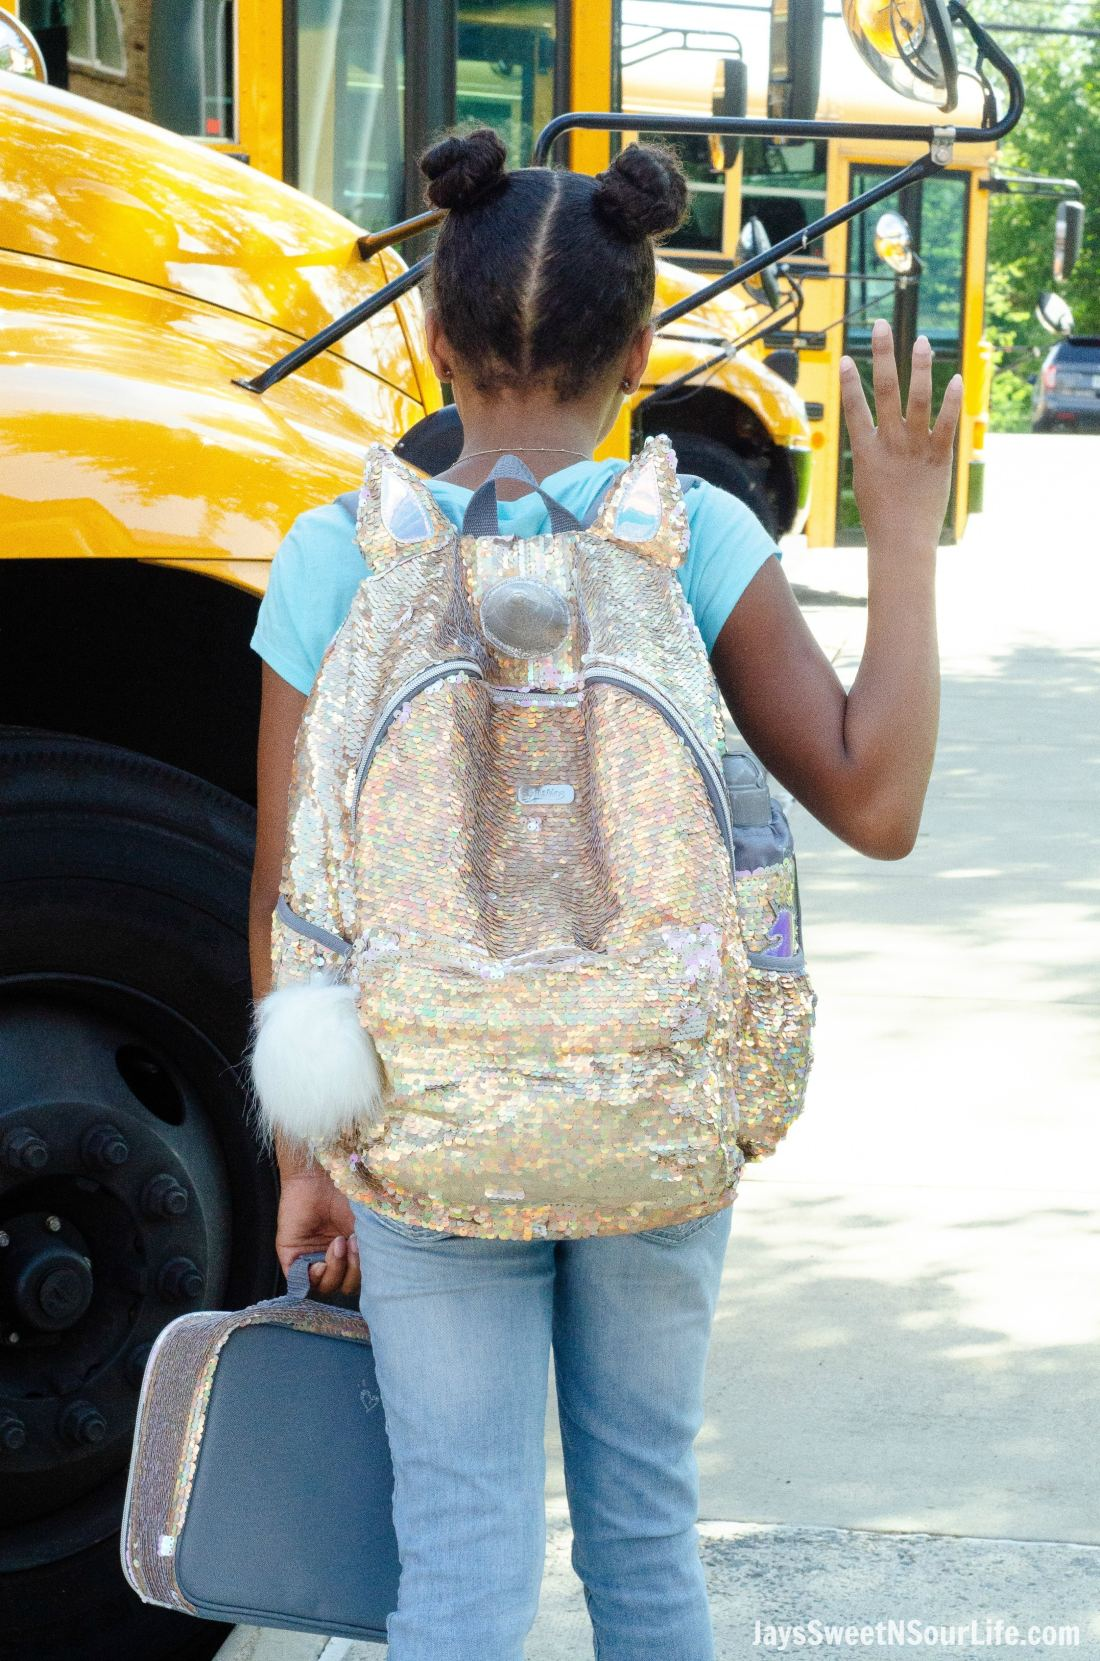 Justice Back To School Unicorn Backpack Lifestyle Shot Infront of Bus.Back To School Must Have Fashion For Tweens via JaysSweetNSourLife.com